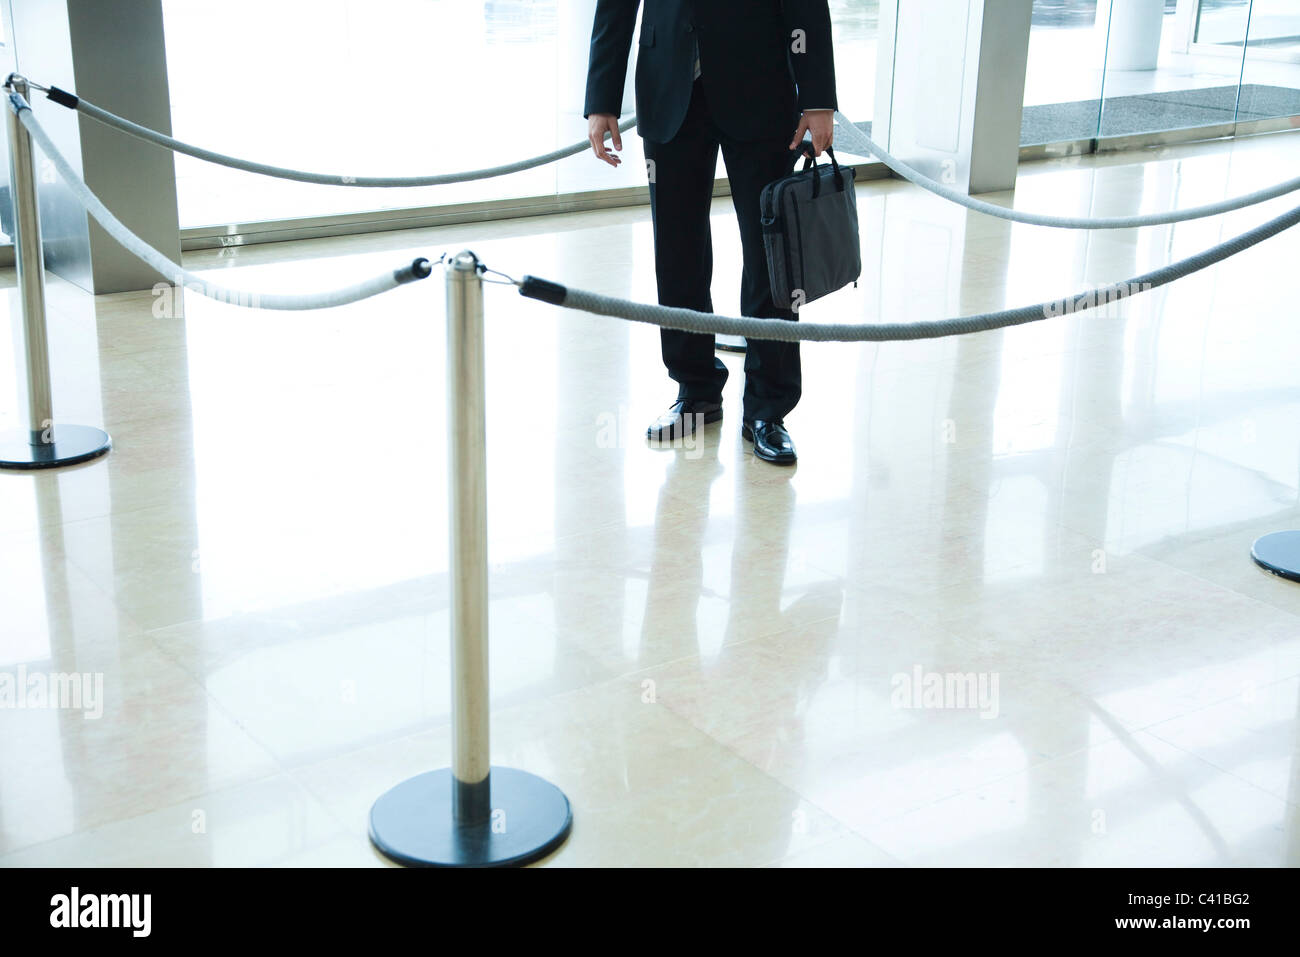 Businessman standing inside roped off area in lobby - Stock Image